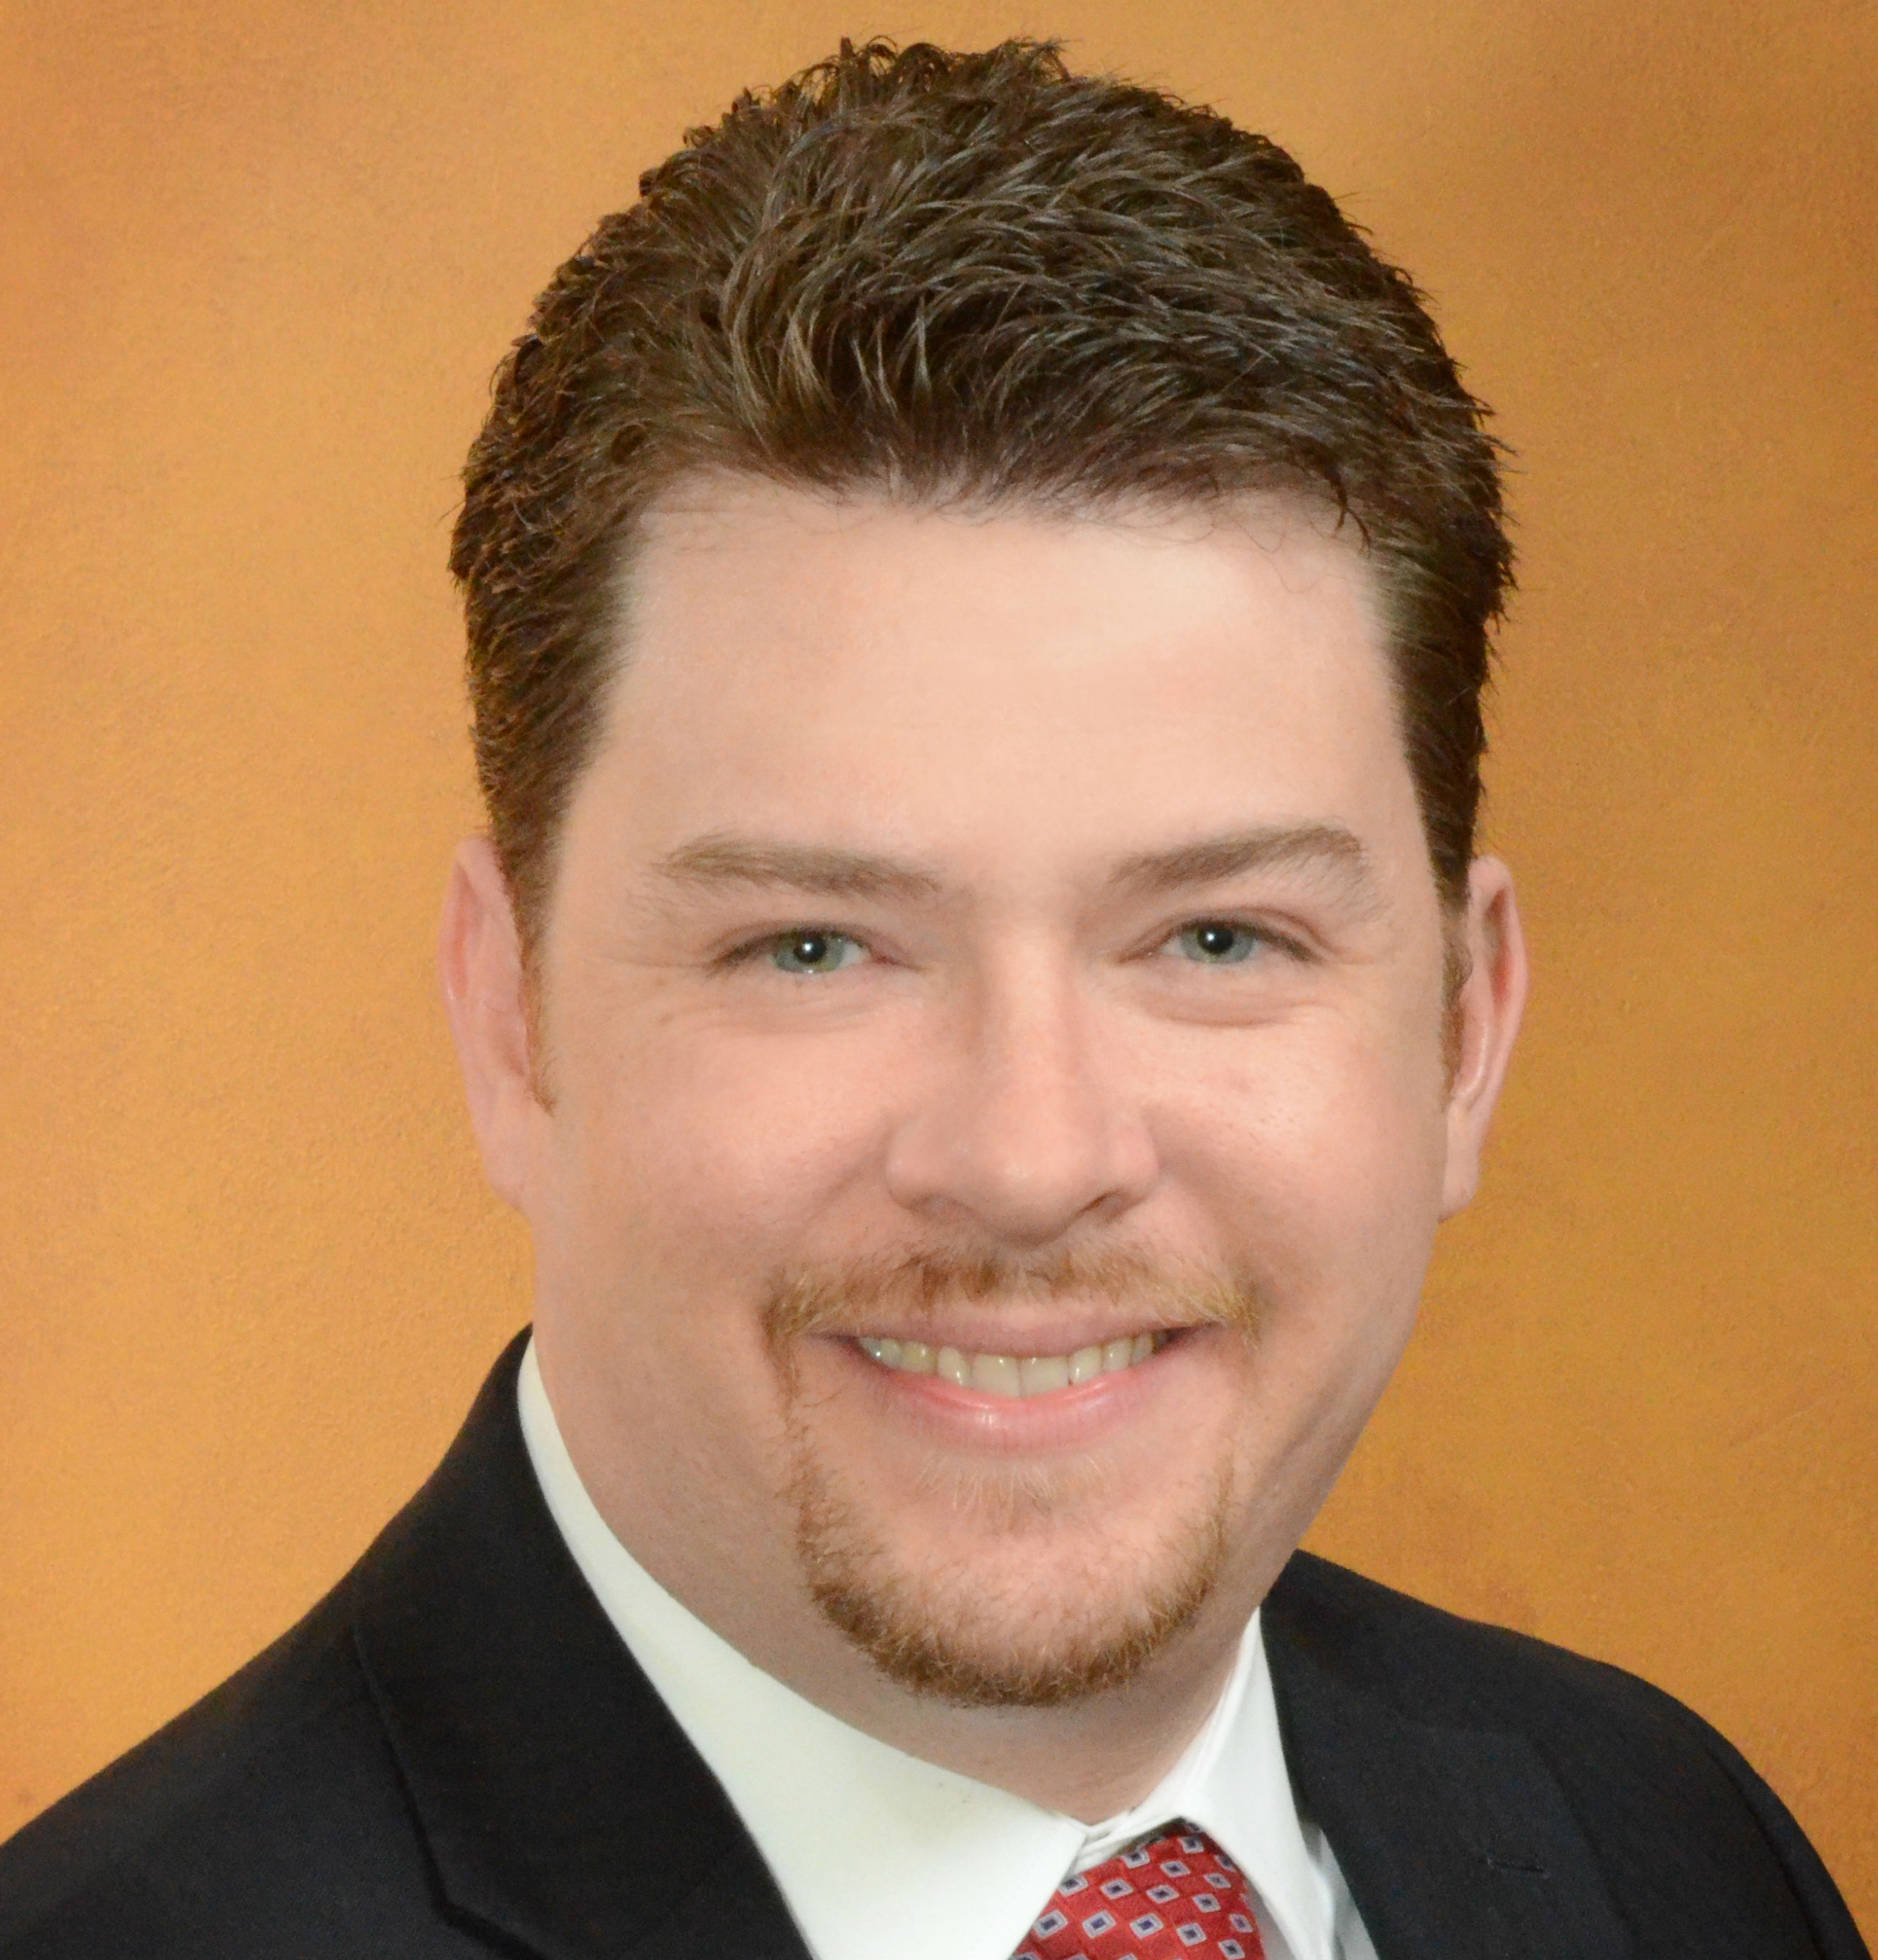 Chris Rondinelli, financial advisor Seven Fields PA